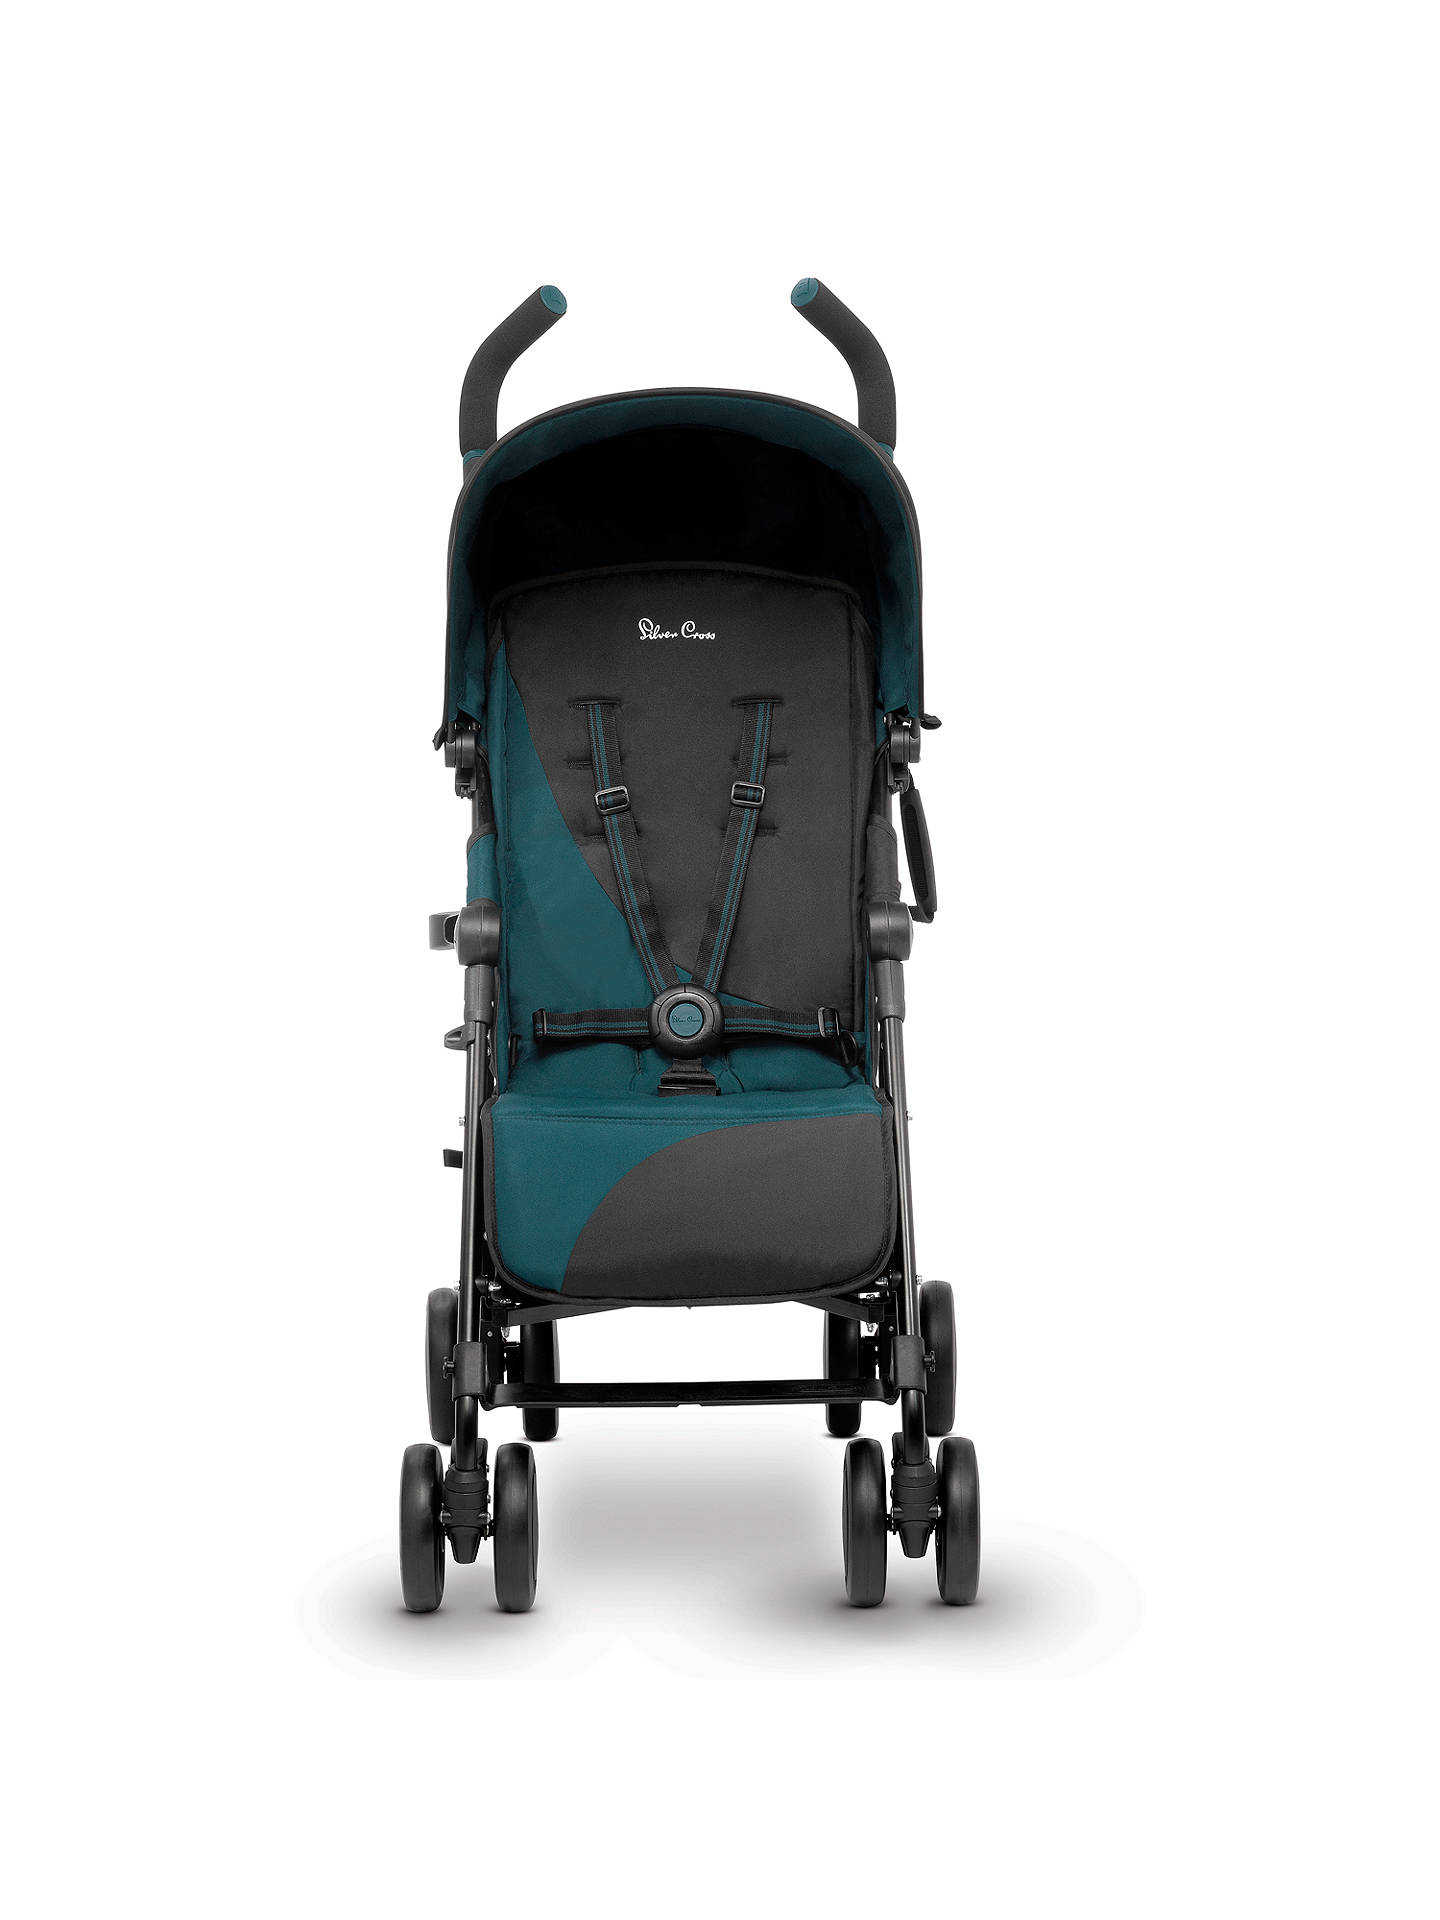 BuySilver Cross Pop Stroller, Teal Online at johnlewis.com